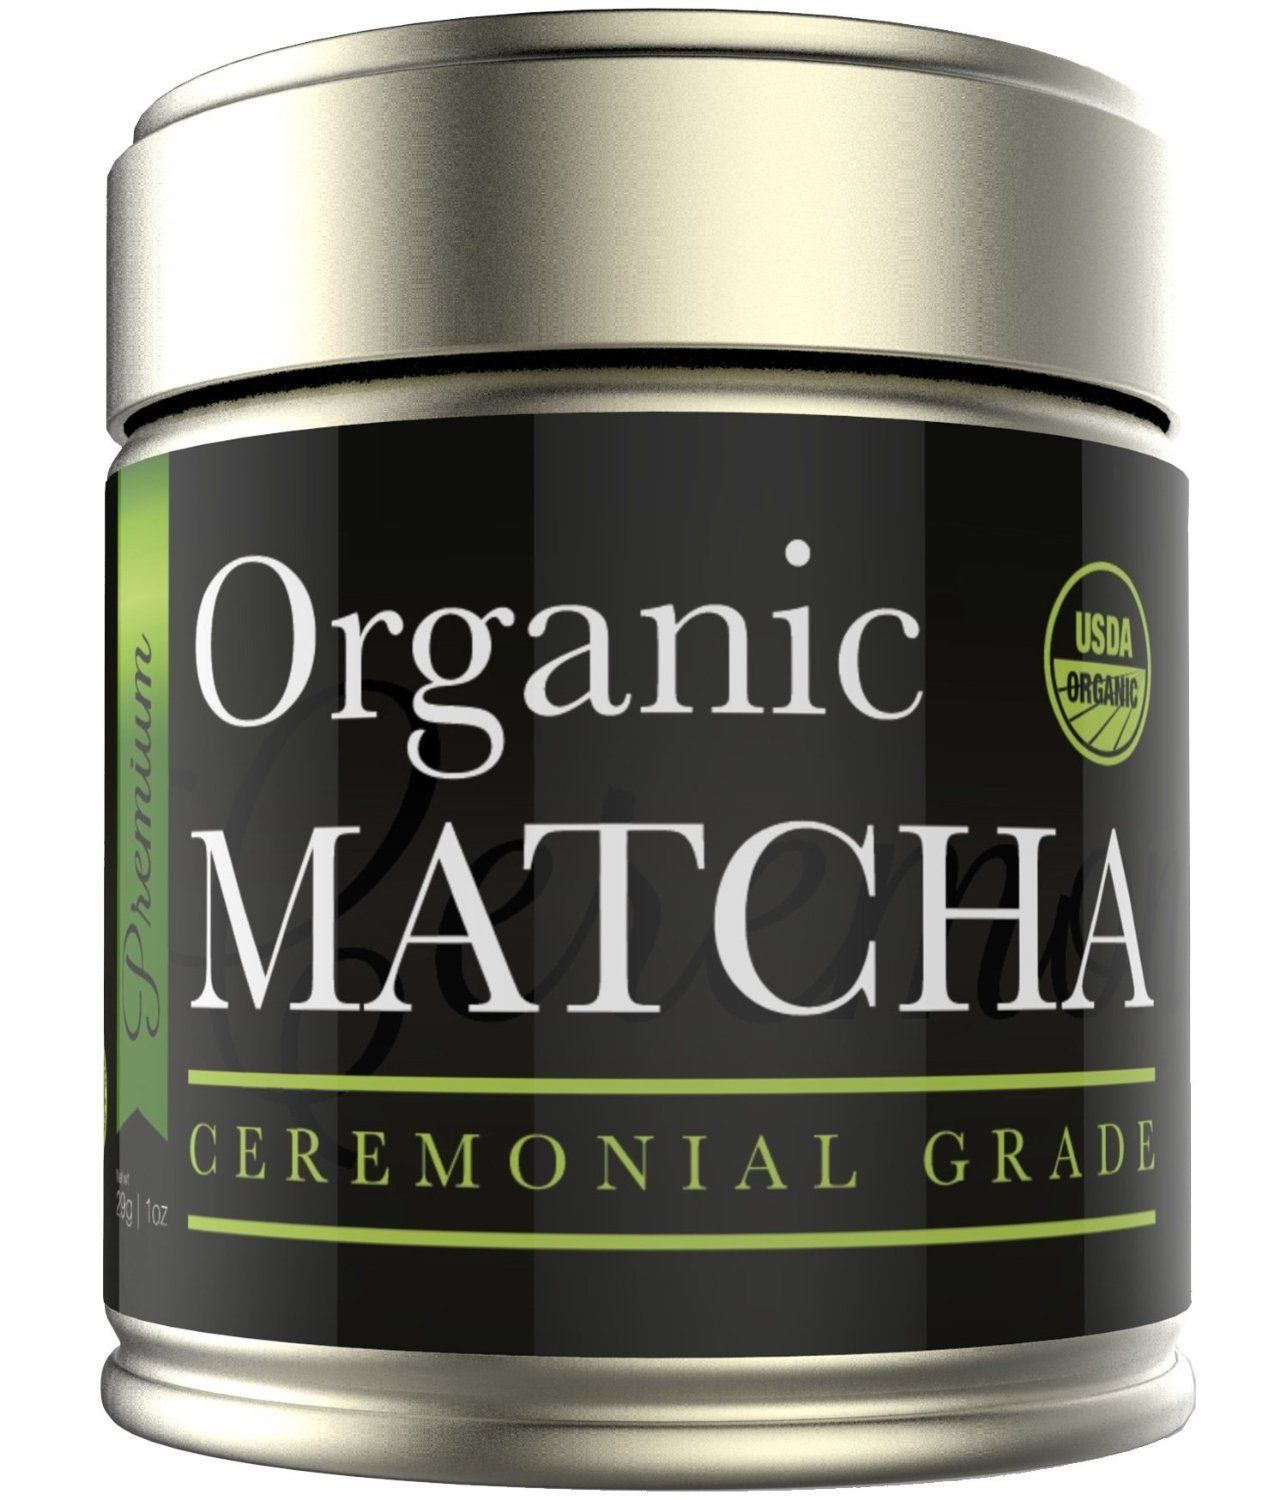 """Kiss Me Organics - ORGANIC Matcha Ceremonial Grade - Japanese; PRICE: $28; 137 times more Antioxidants than standard Chinese TEA; reduced RISKS of: Cardiovascular disease (65%); Hypertension (55%); Stroke (31%); L-Theanine (Amino Acid) to boost mental focus/energy/mood/calmness; fat/sugar free; 3 Cal./g. """"Good QUALITY at a reasonable PRICE."""" -- By A. Mouse. MORE via: http://sd4shila.creativesolutionstore.com OR http://www.sd4shila.net/amazon-com OR…"""